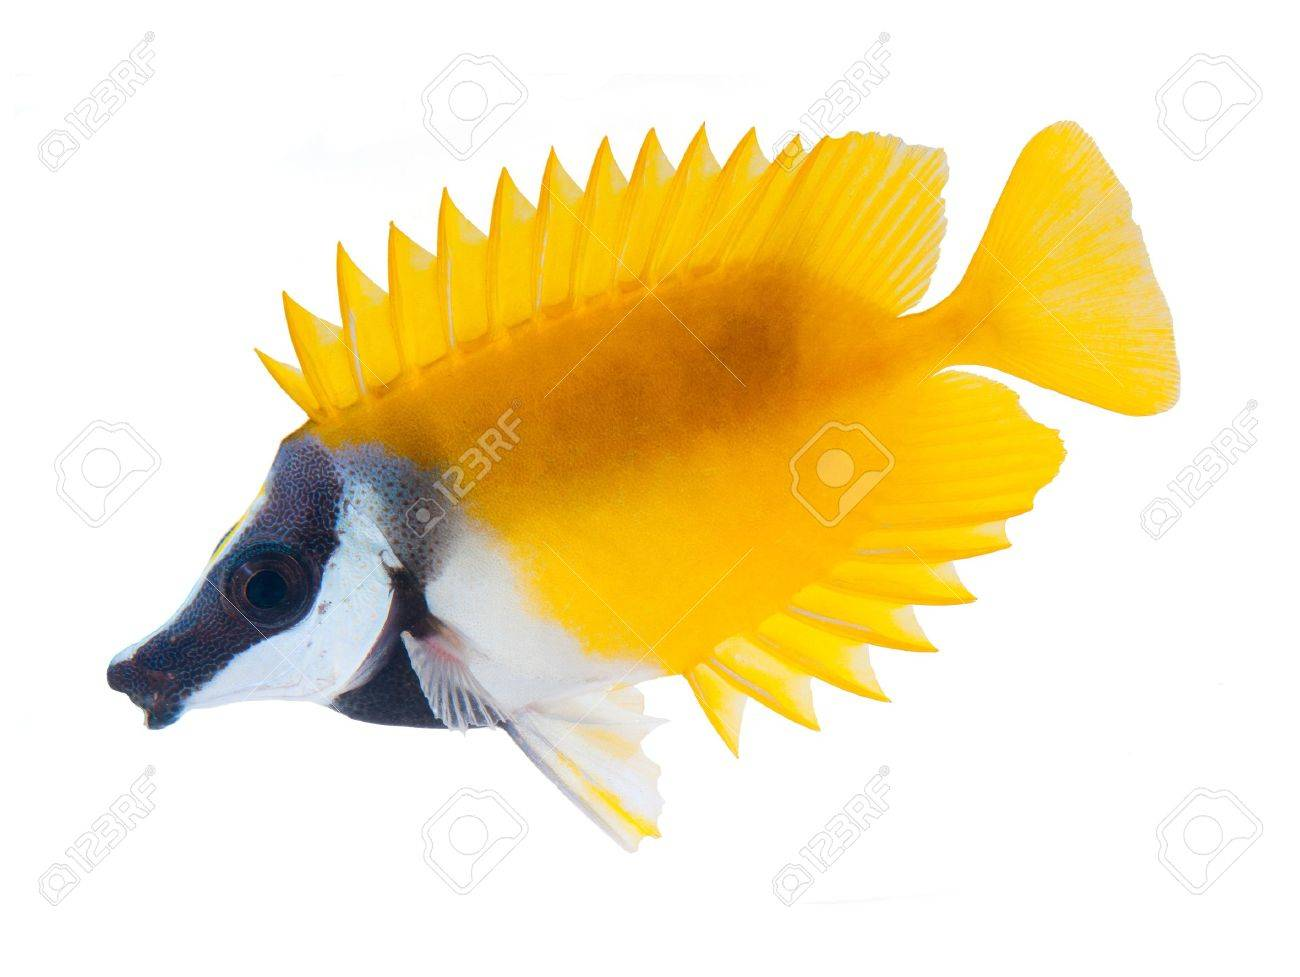 reef fish, foxface tabbitfish, isolated on white background Stock Photo - 11154896